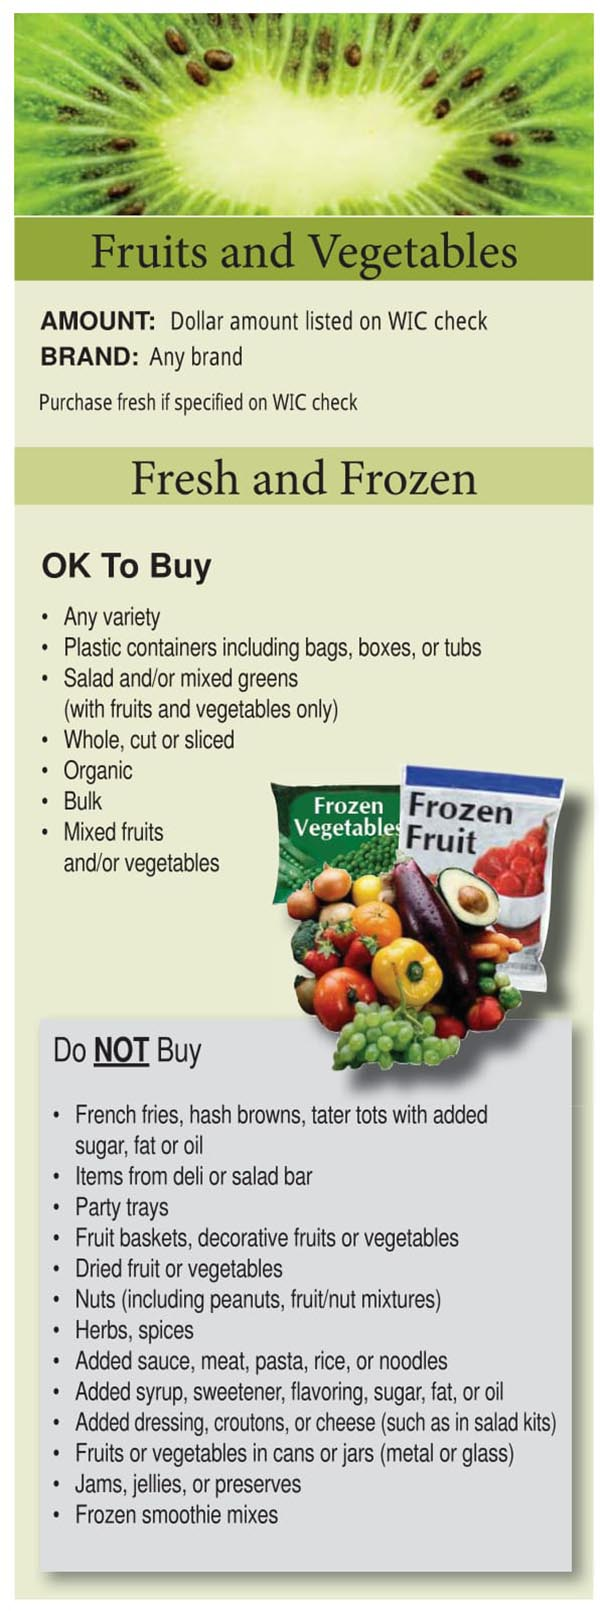 Colorado WIC Food List Fruits and Vegetables, Fresh and Frozen